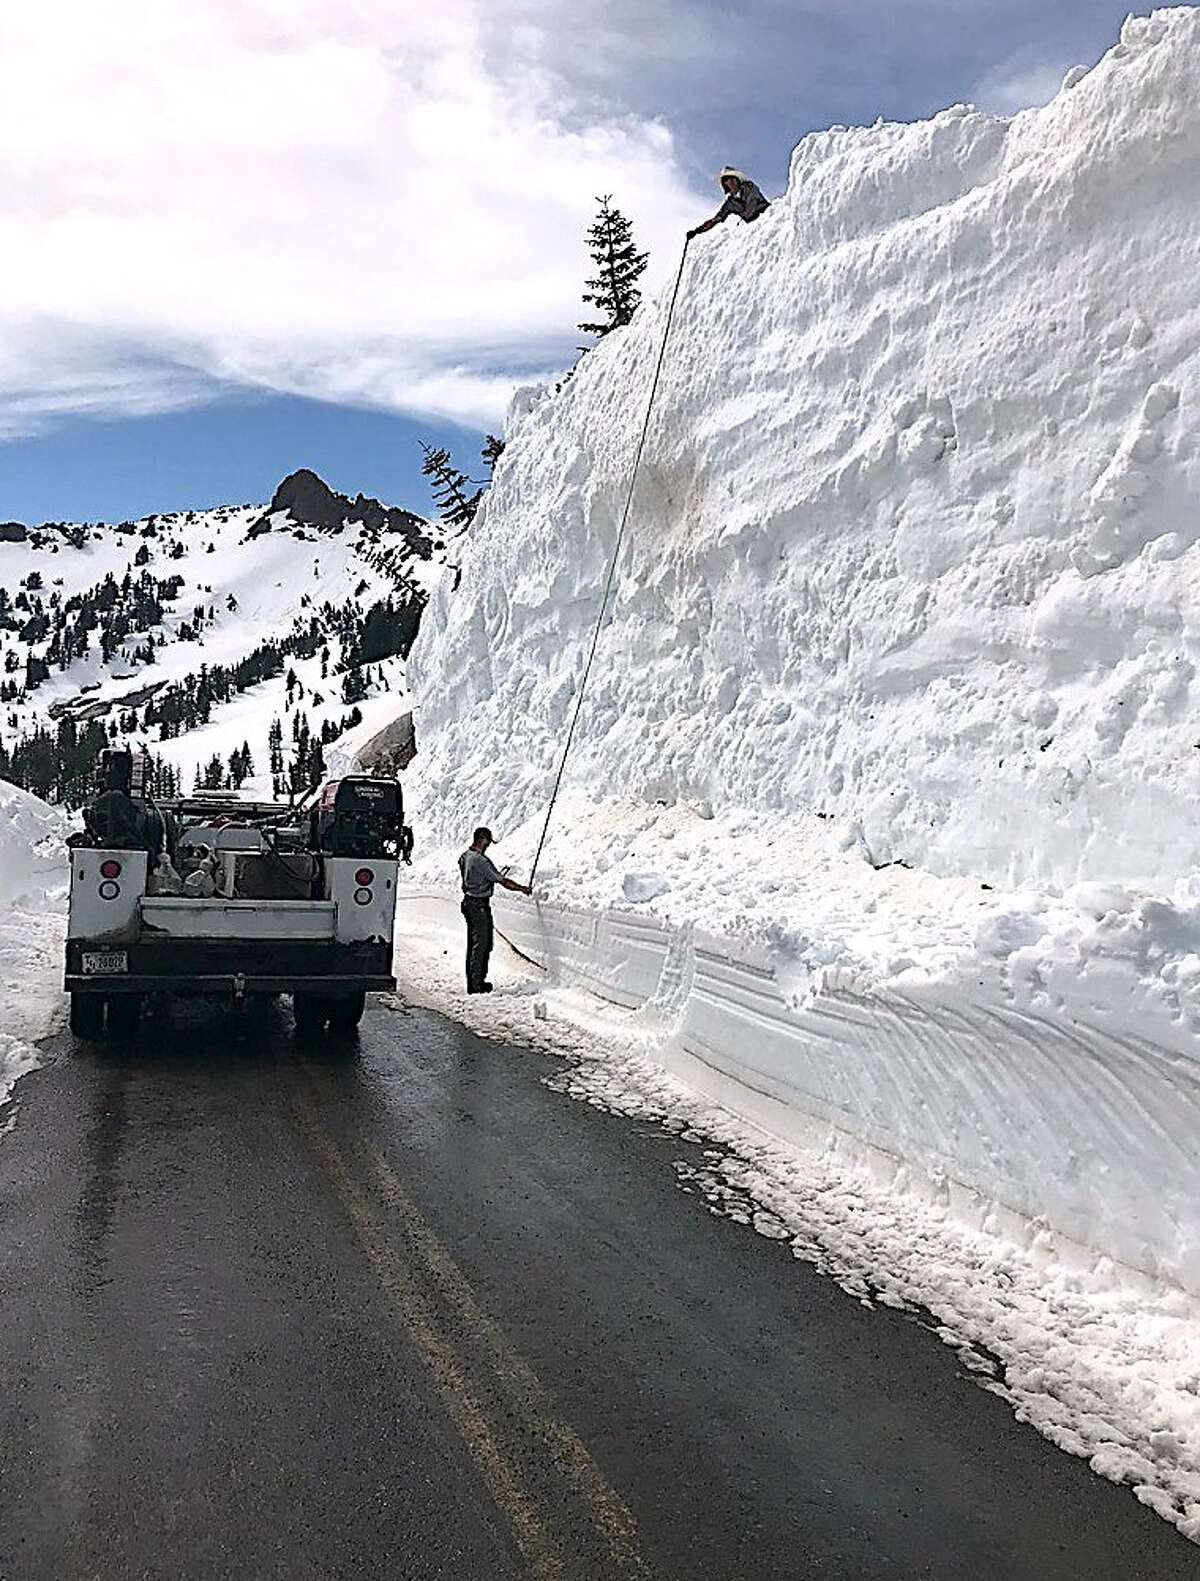 Road crews measured the snow wall at 28 feet high on the Lassen Park Highway at Lassen Volcanic National Park